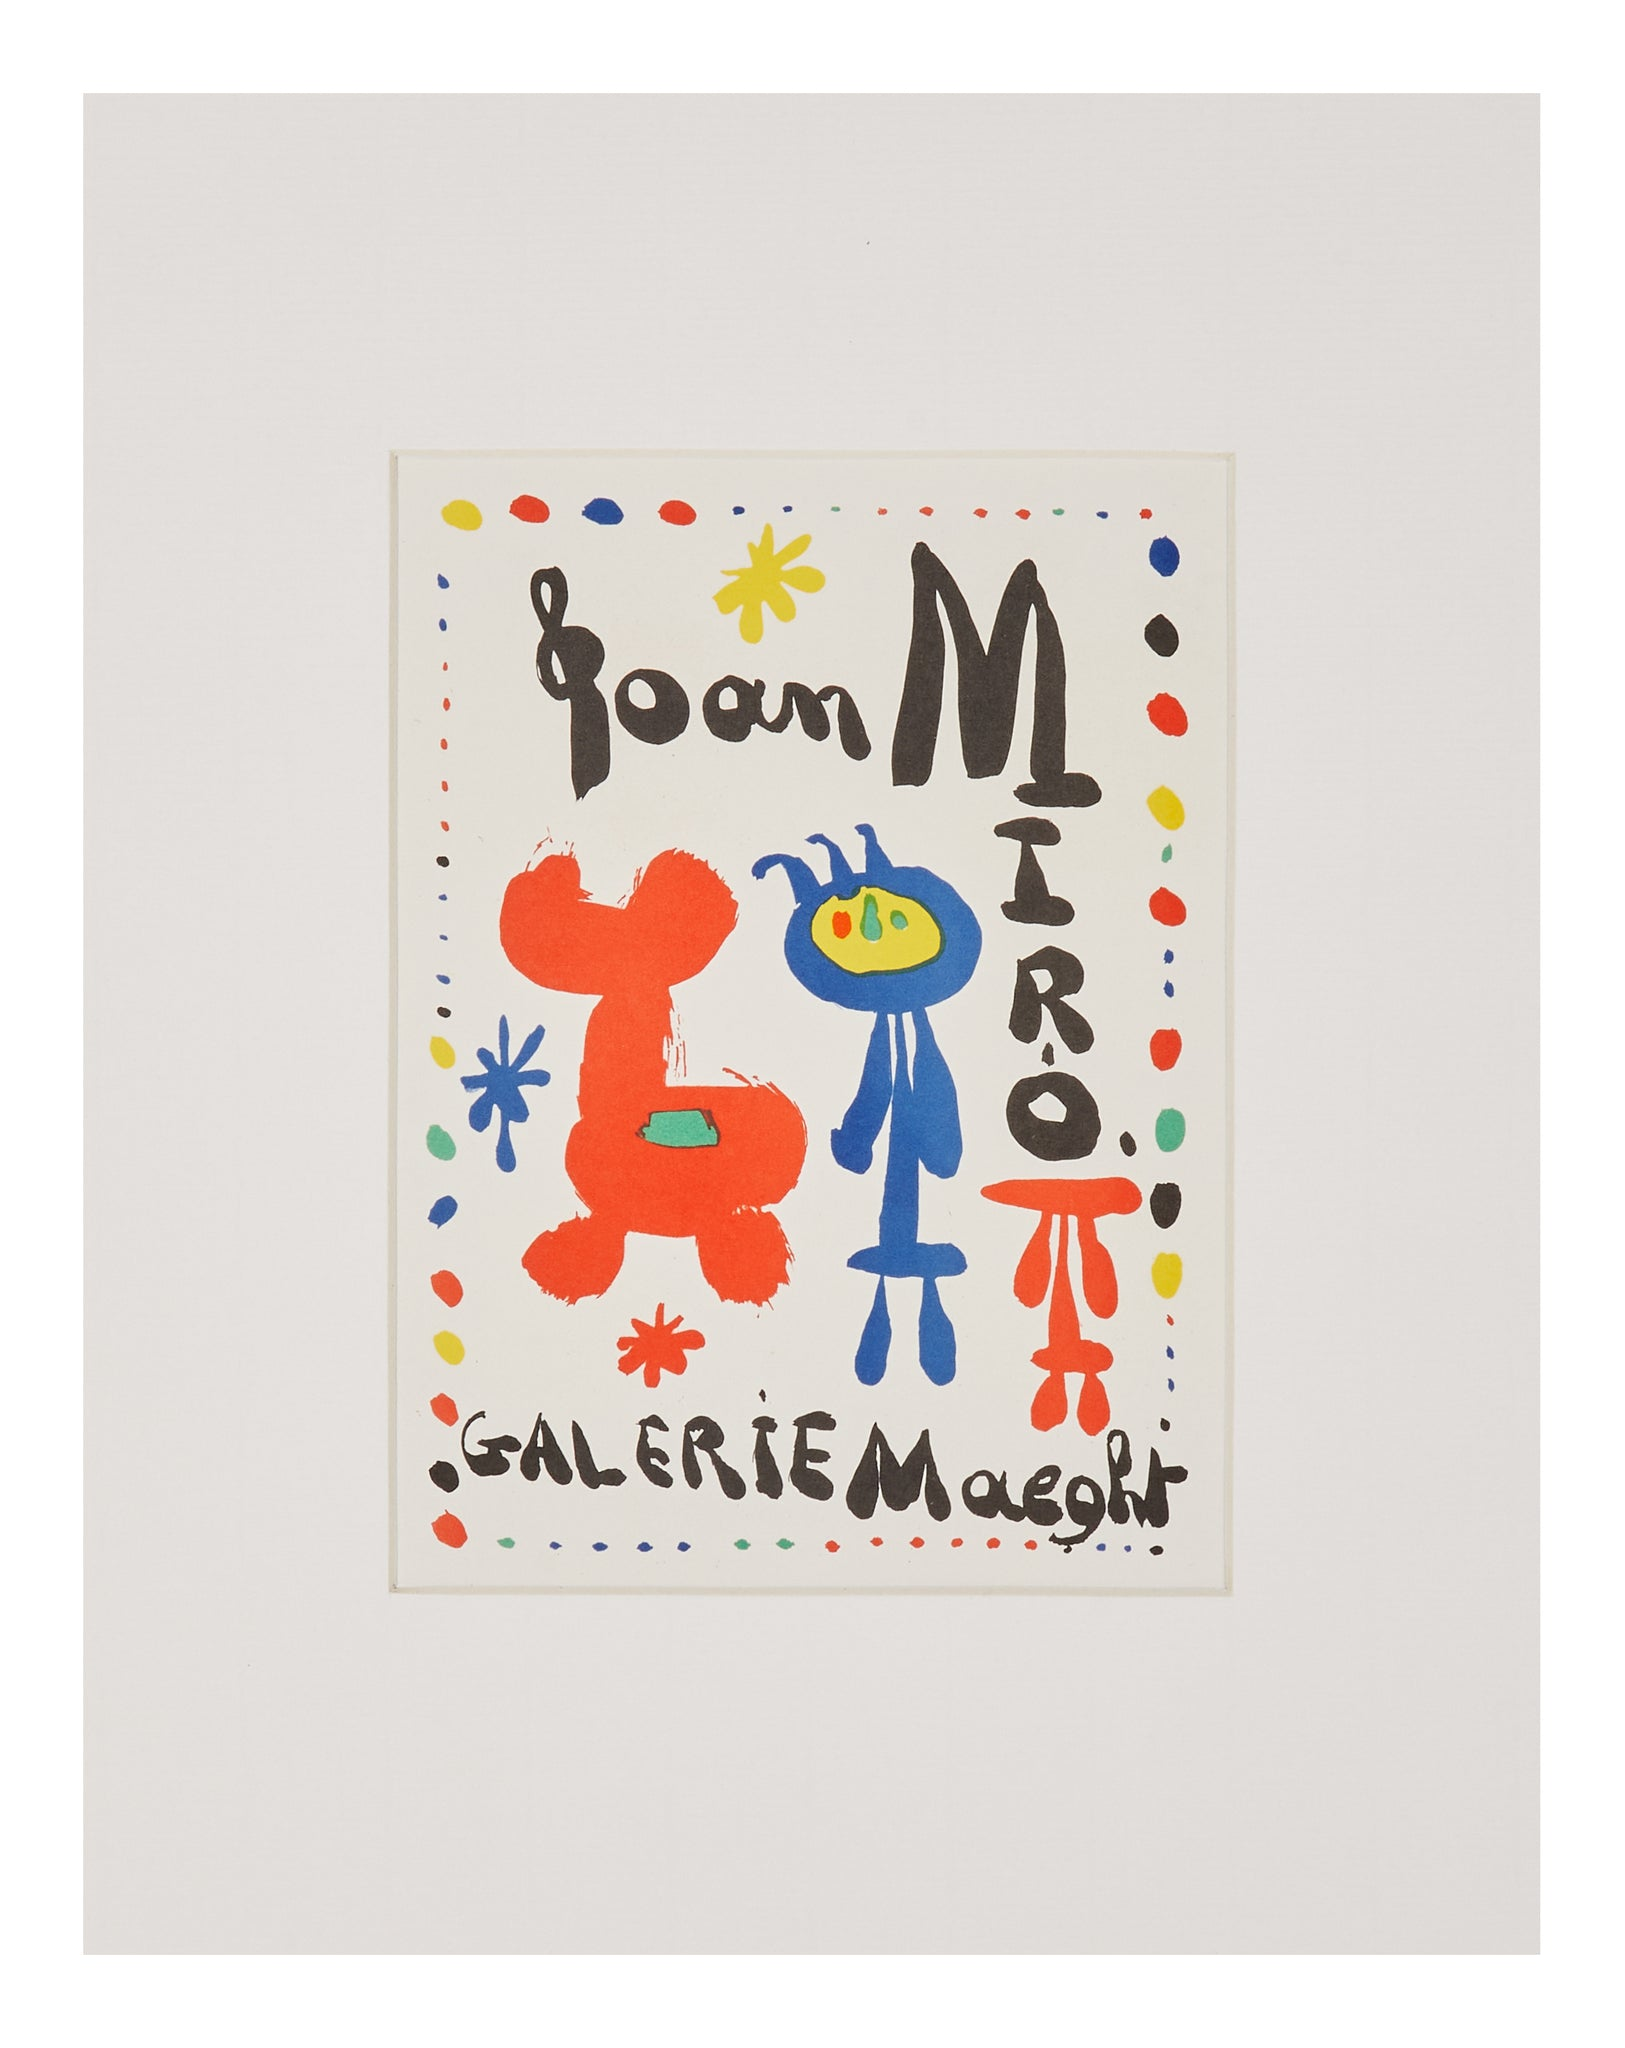 Joan Miró 'Galerie Maeght' Lithograph